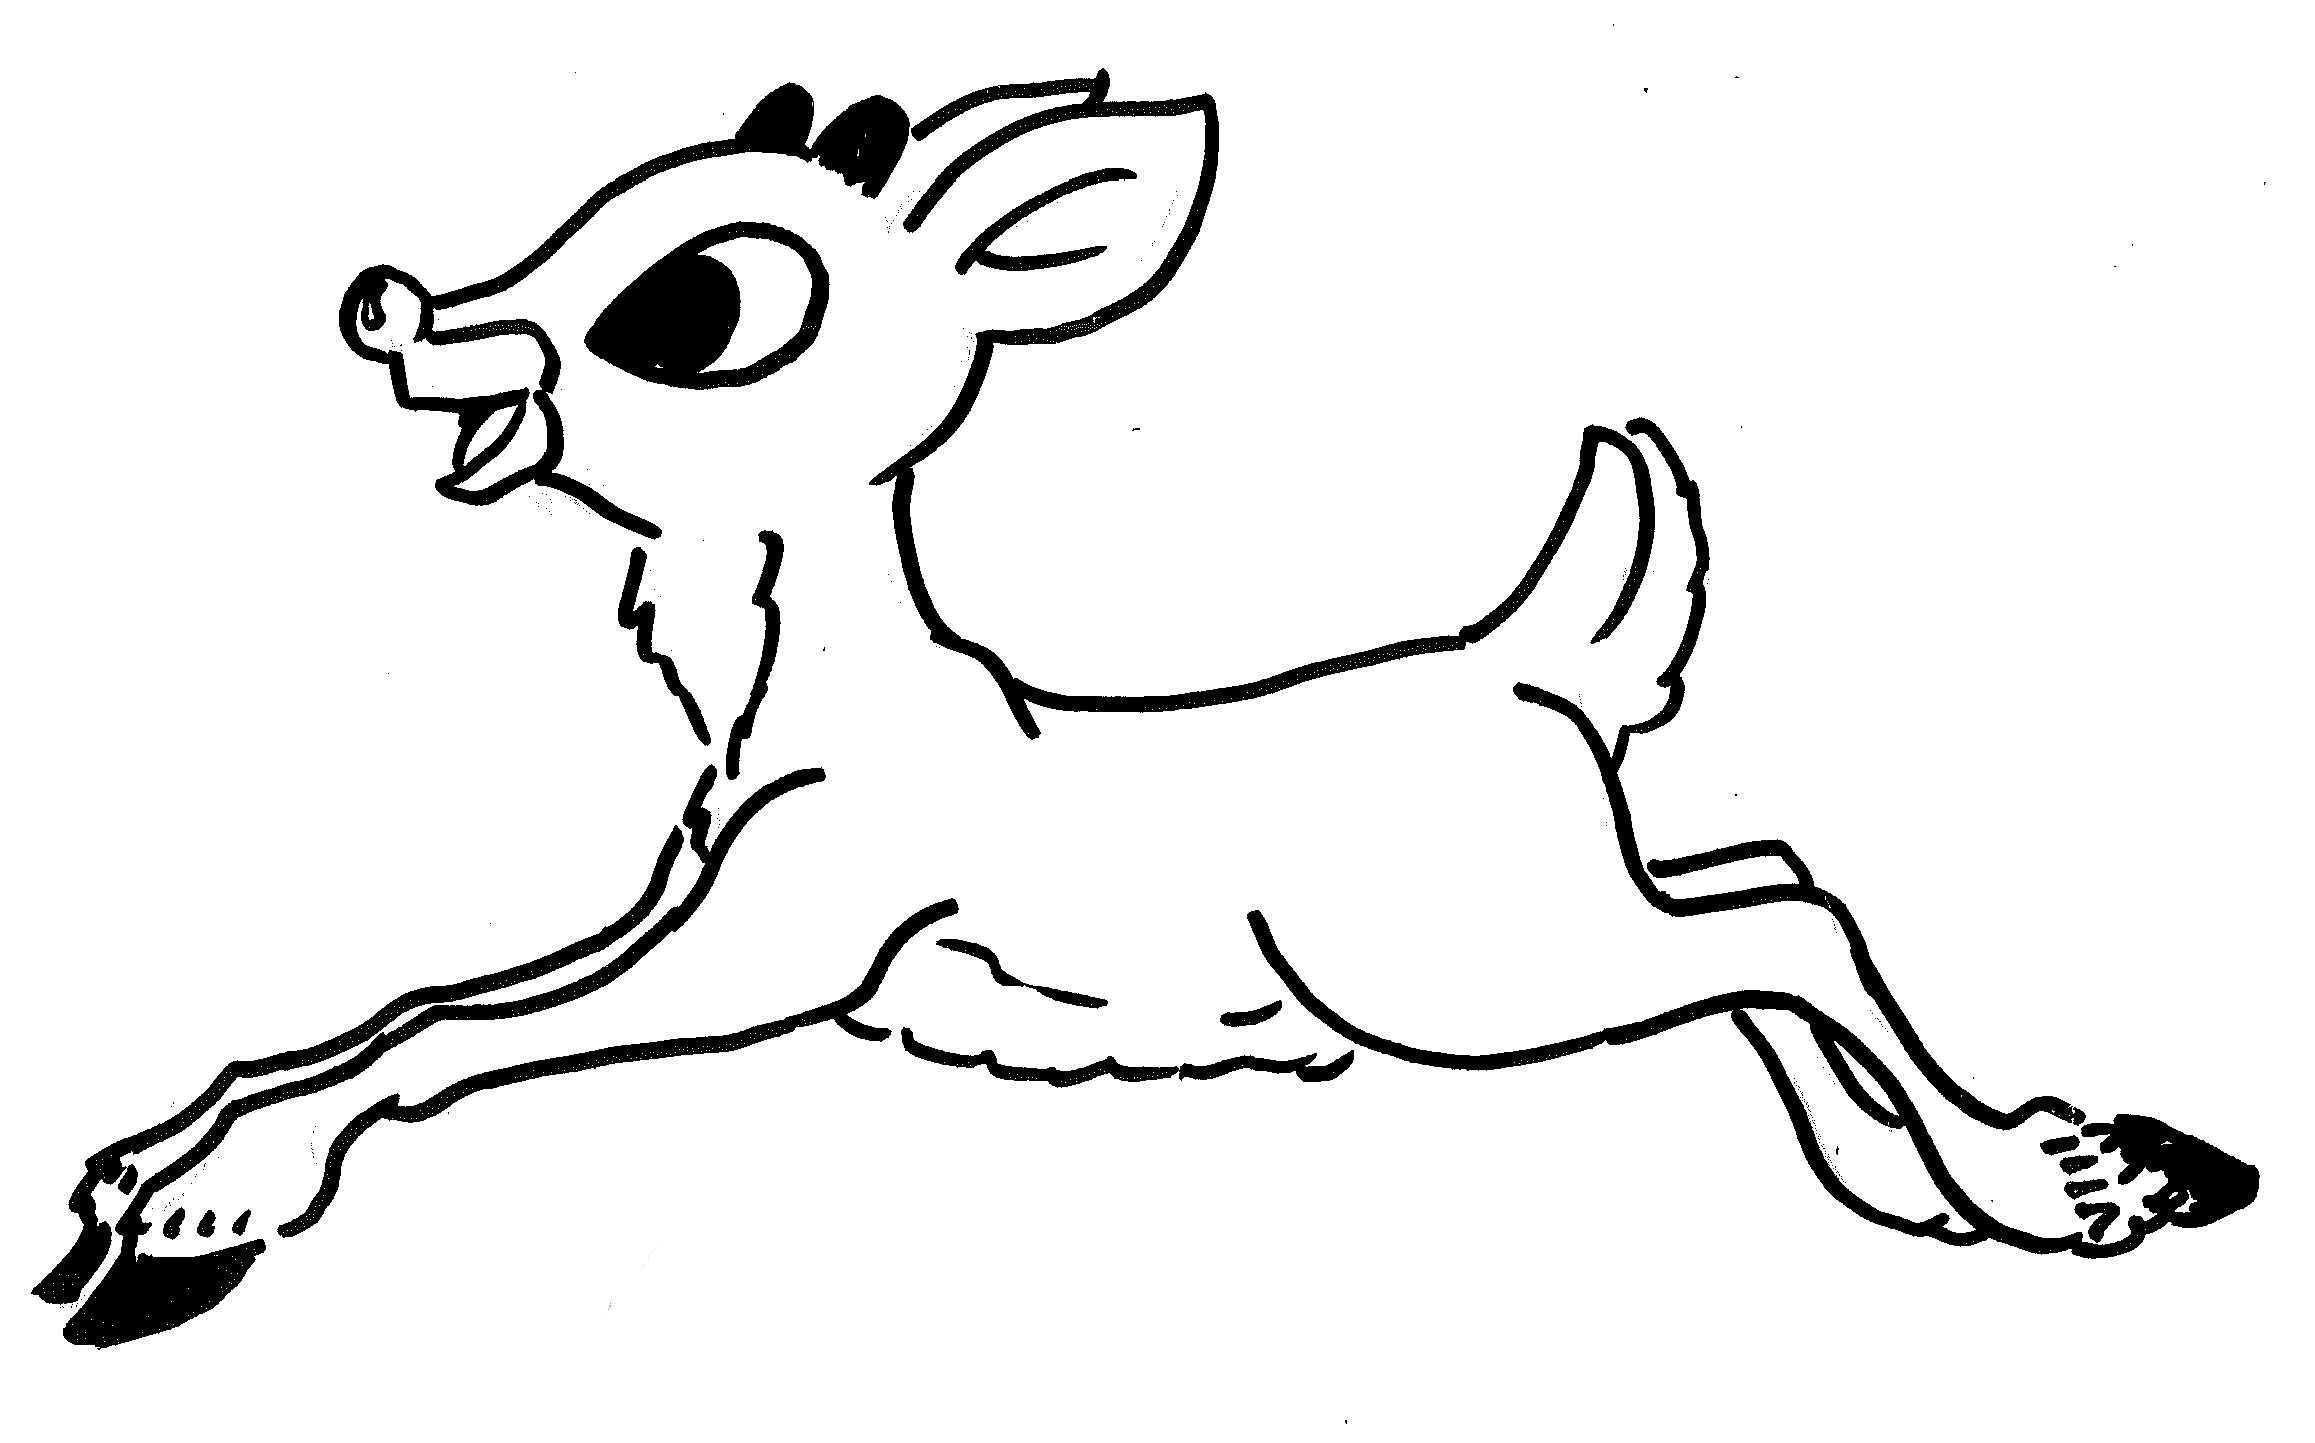 Christmas Reindeer Coloring Pages With Rudolph The Red Nosed Disney